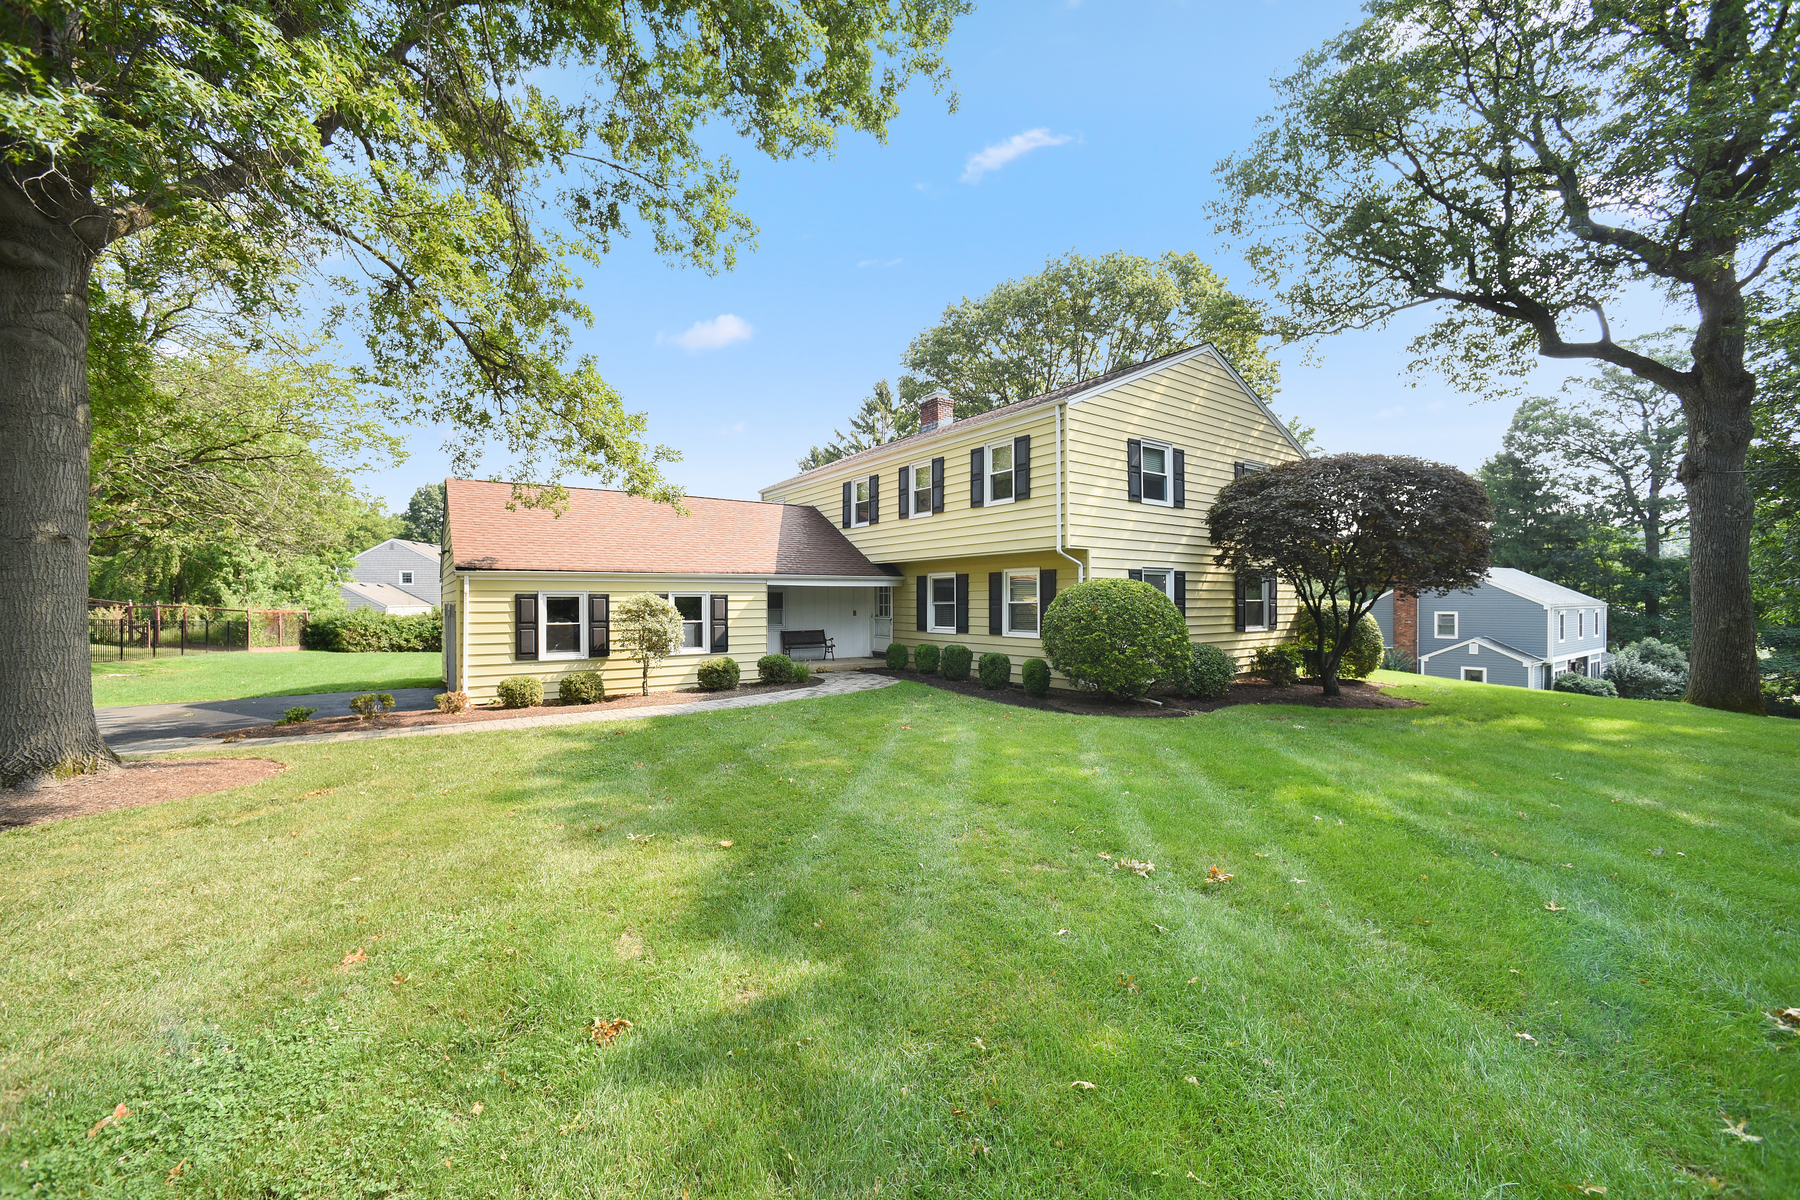 Single Family Homes for Active at Inviting Colonial in Desirable Butterworth Section 3 Corn Hill Drive Morris Township, New Jersey 07960 United States